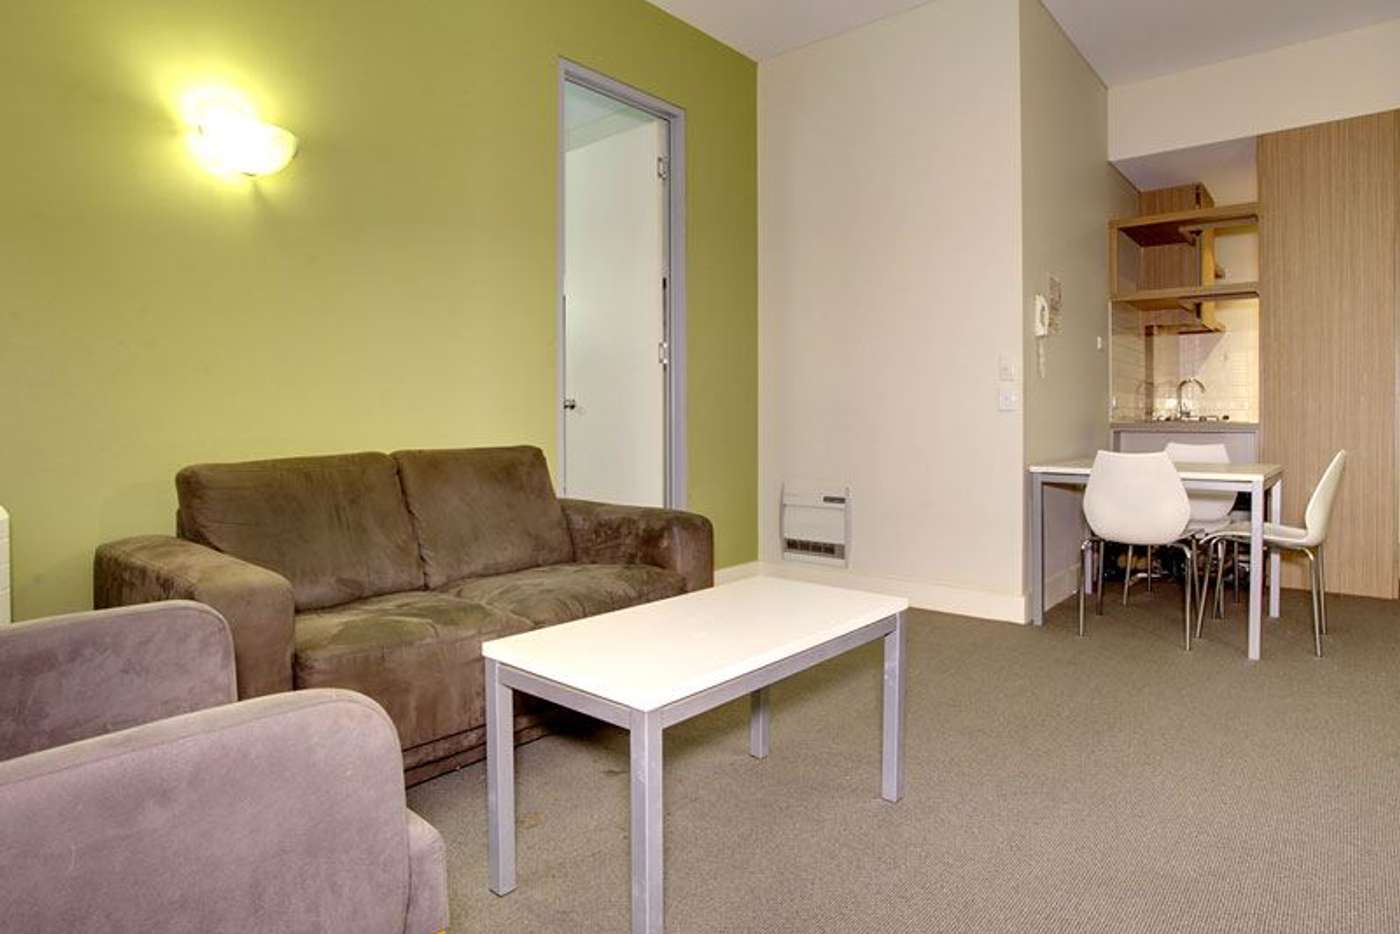 Fifth view of Homely apartment listing, 1003/23 King William Street, Adelaide SA 5000